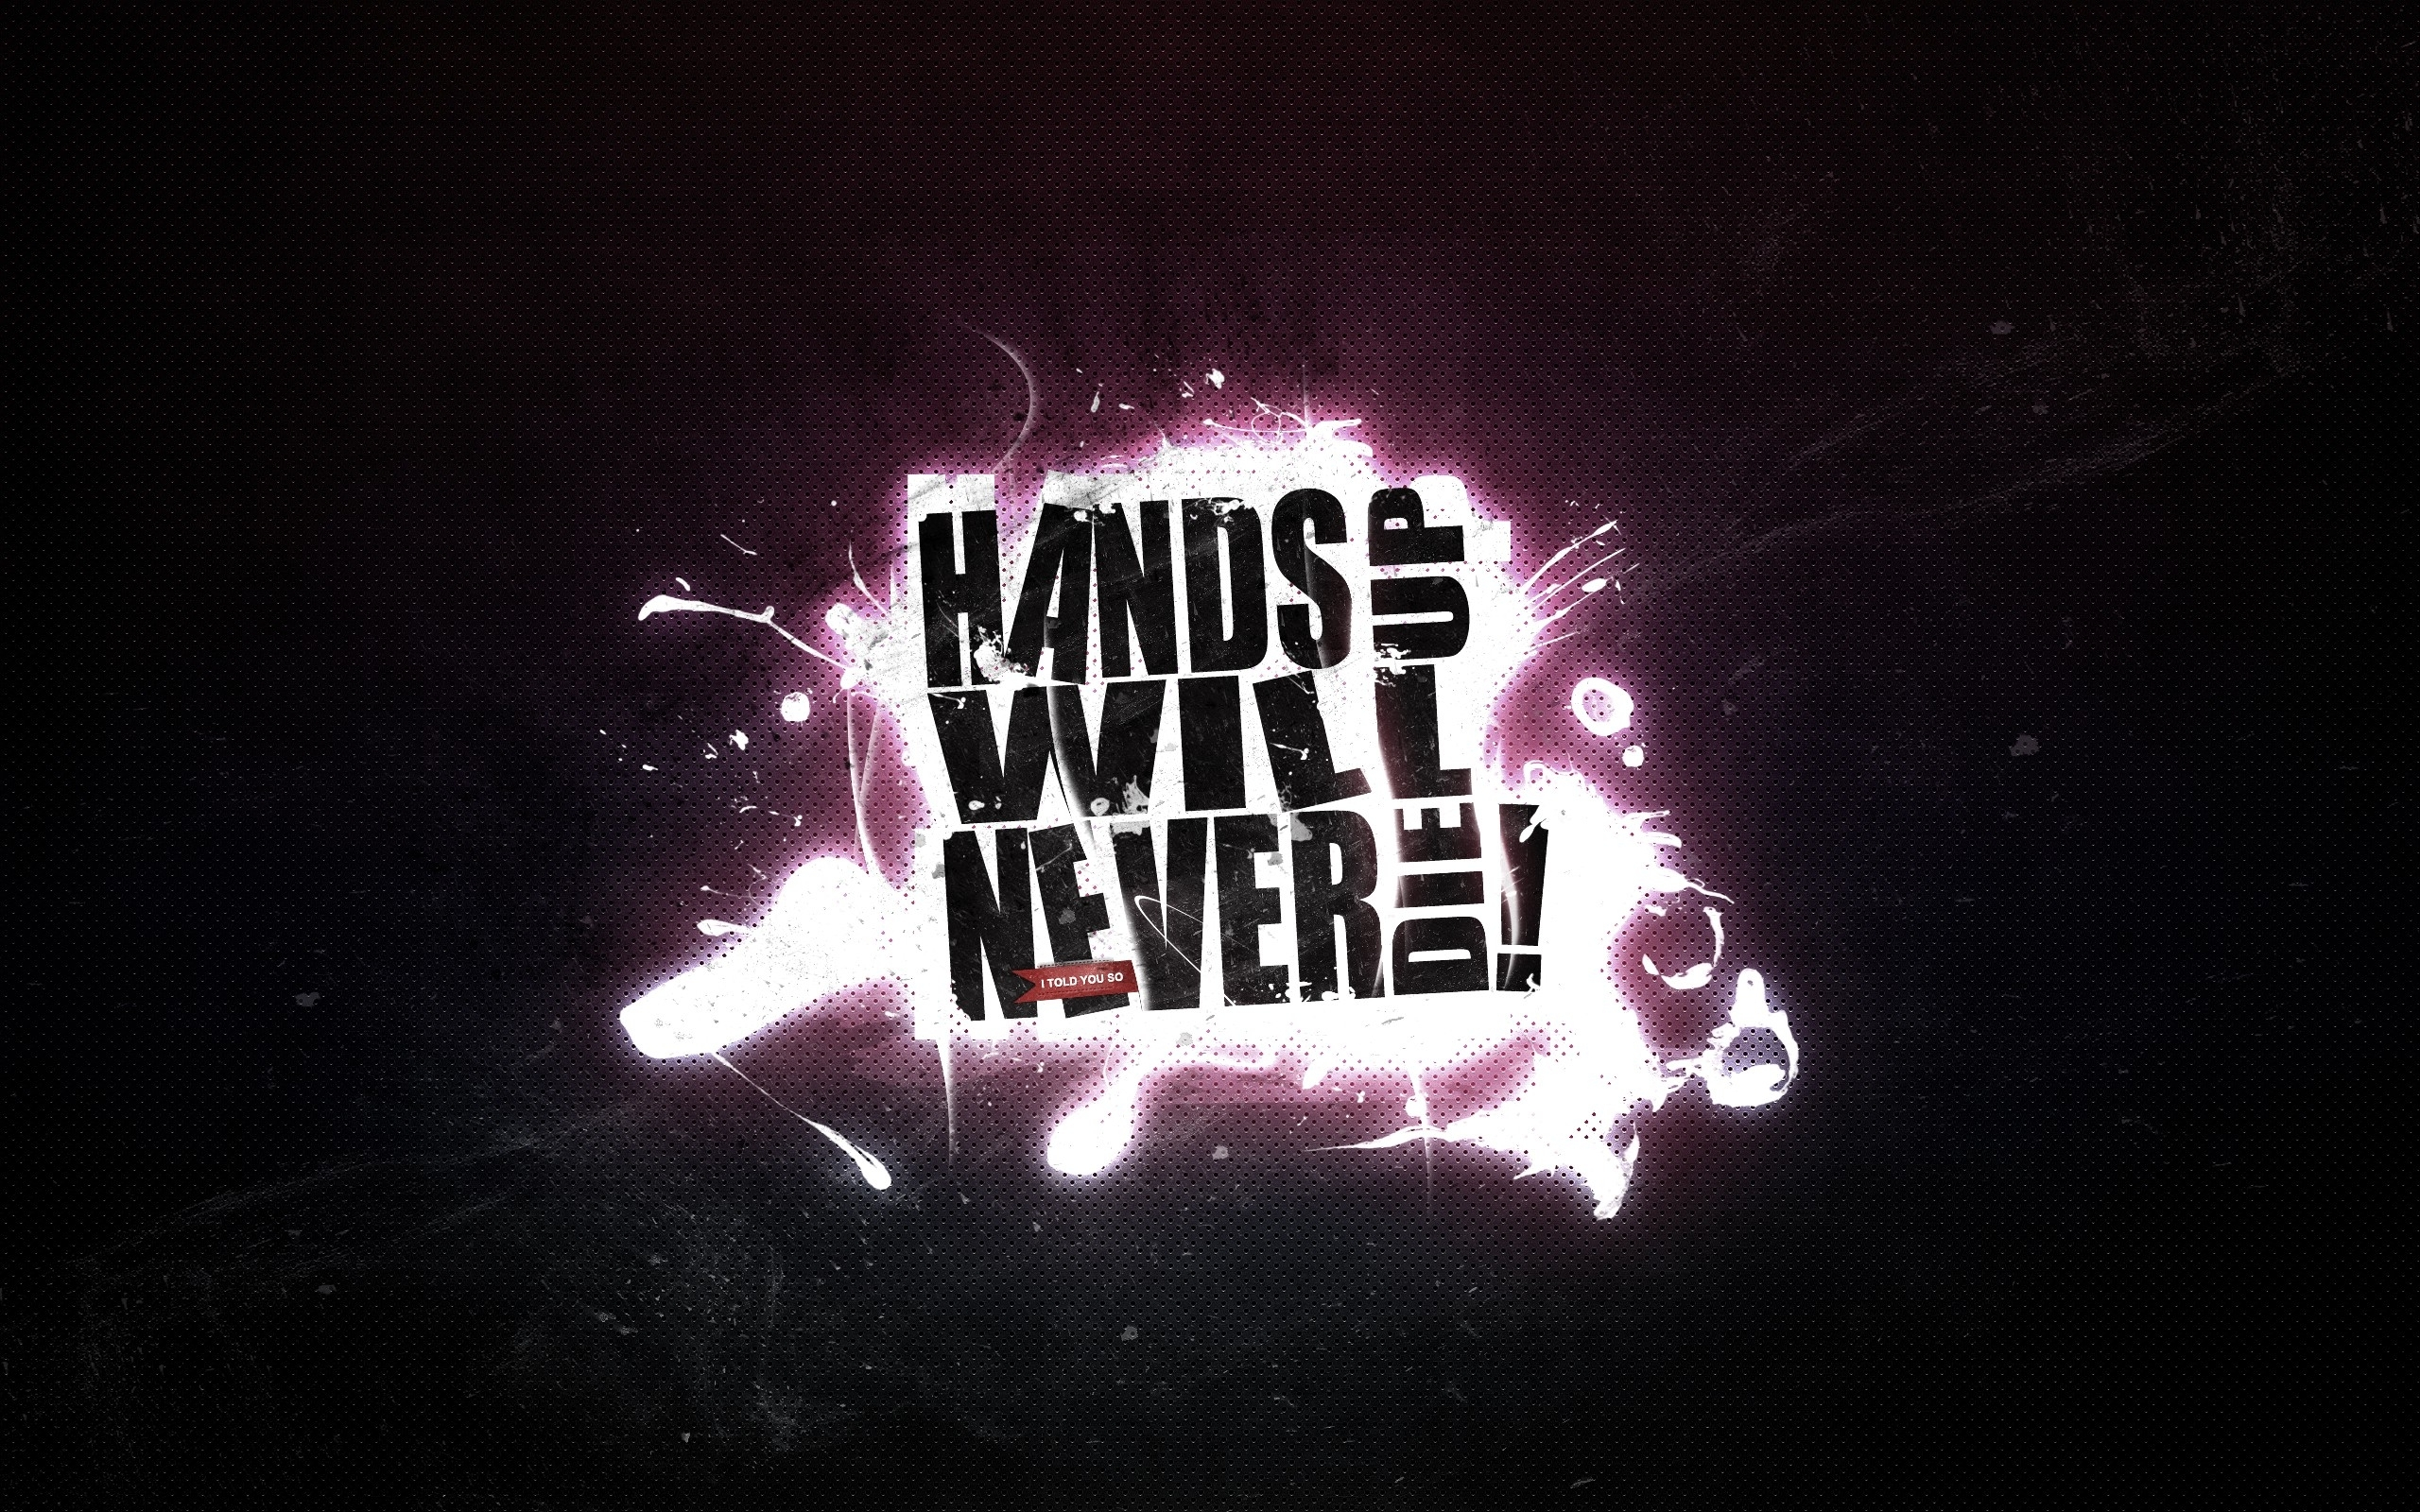 Sweet Anime Wallpaper Hands Up Will Never Die Wallpapers Hands Up Will Never